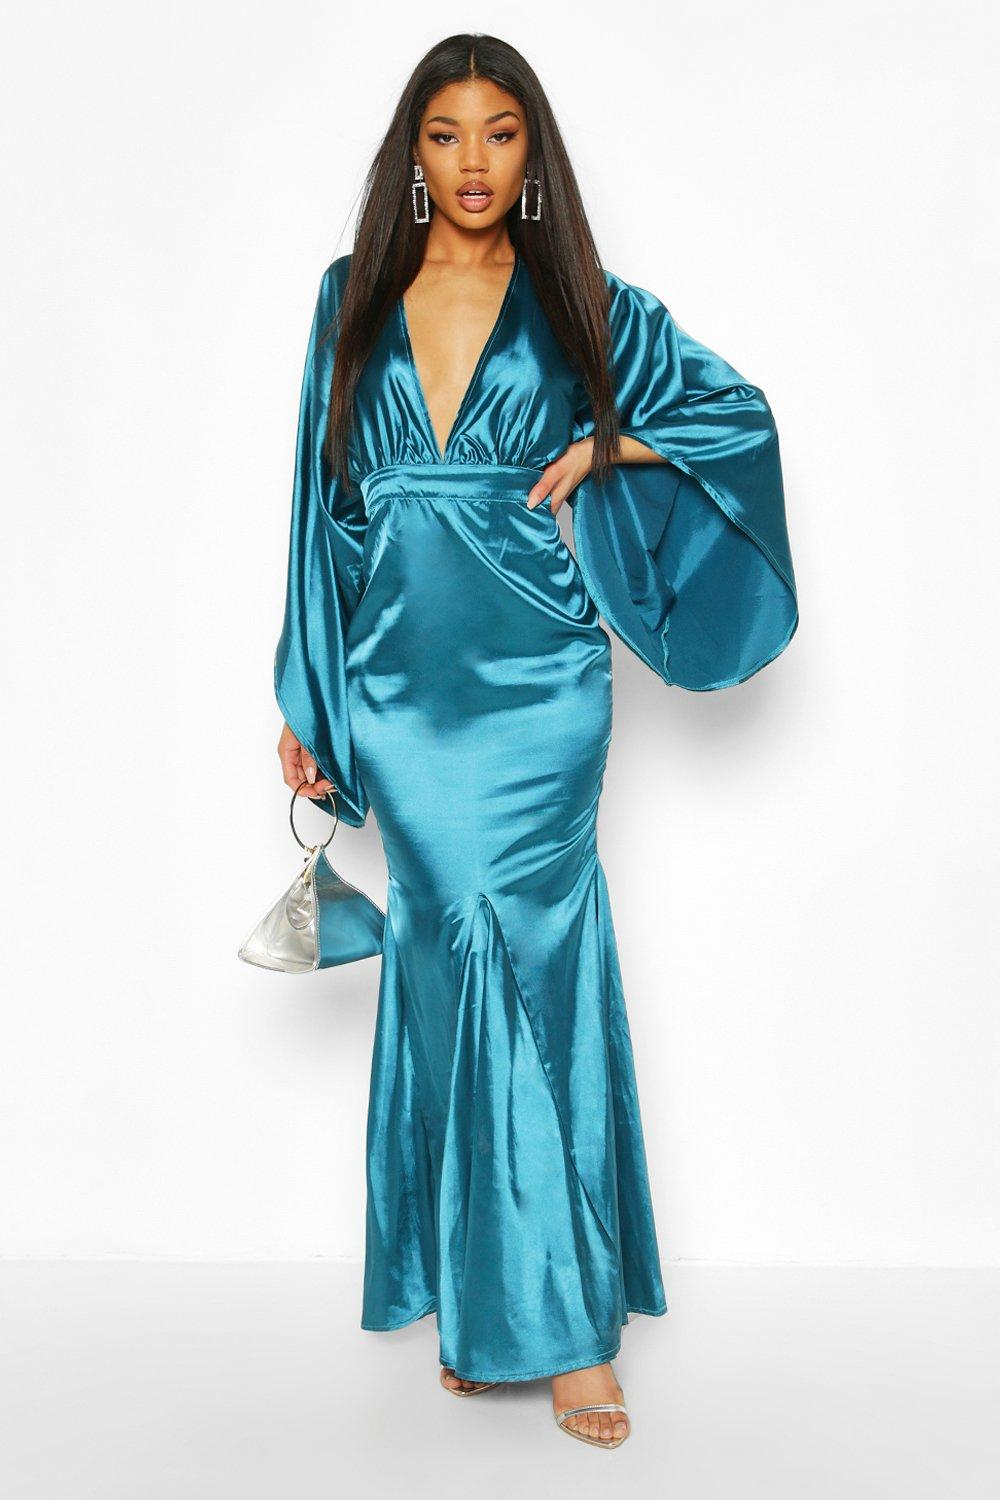 70s Prom, Formal, Evening, Party Dresses Womens Satin Plunge Kimono Sleeve Fishtail Maxi - green - 12 $58.00 AT vintagedancer.com